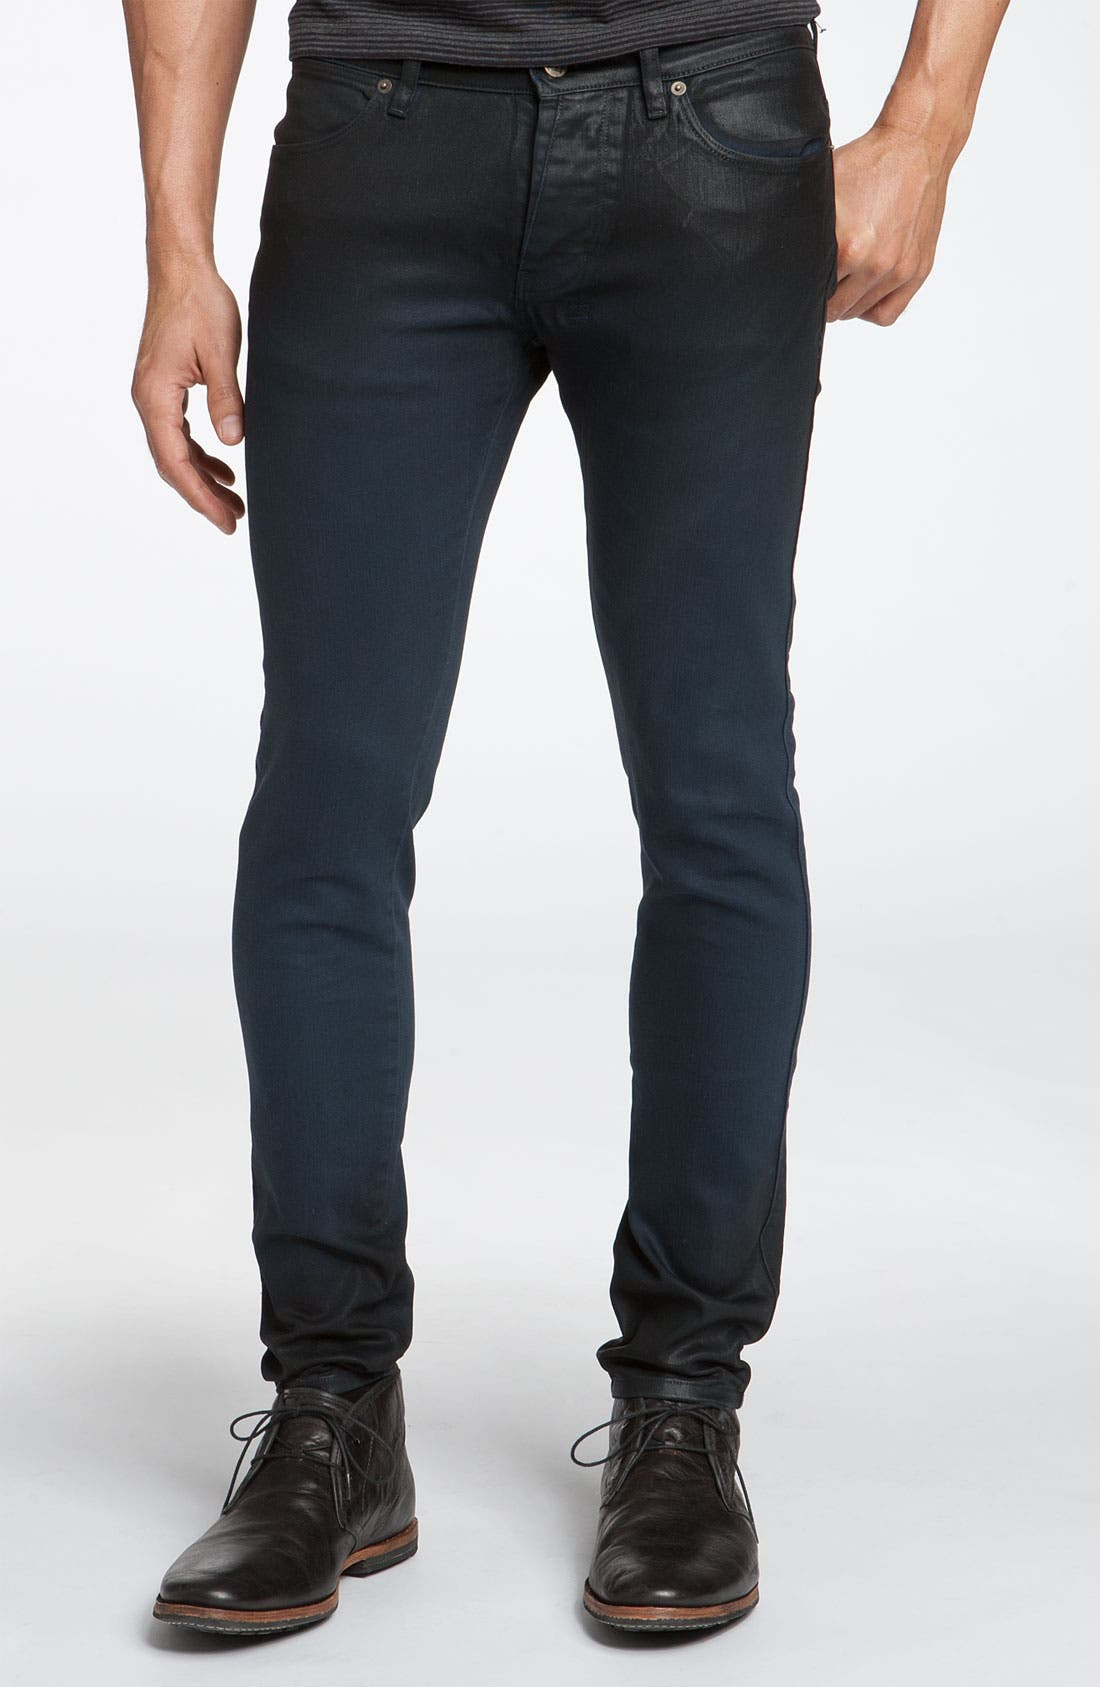 'Van Winkle' Skinny Jeans,                             Alternate thumbnail 2, color,                             001